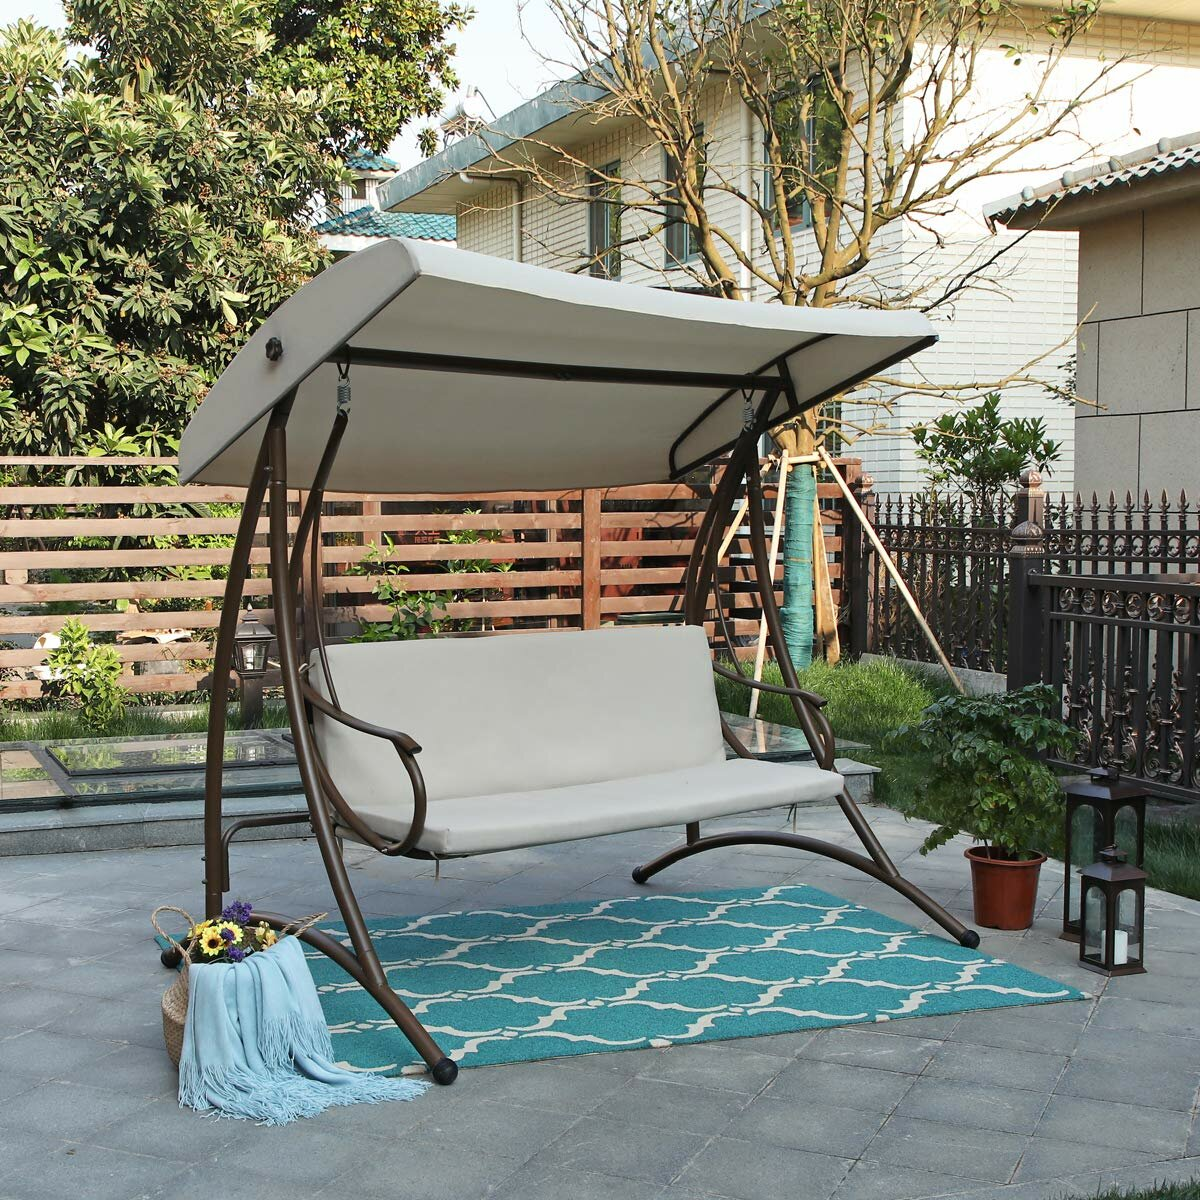 Arlmont Co Carl Outdoor Steel Porch Swing With Stand Reviews Wayfair